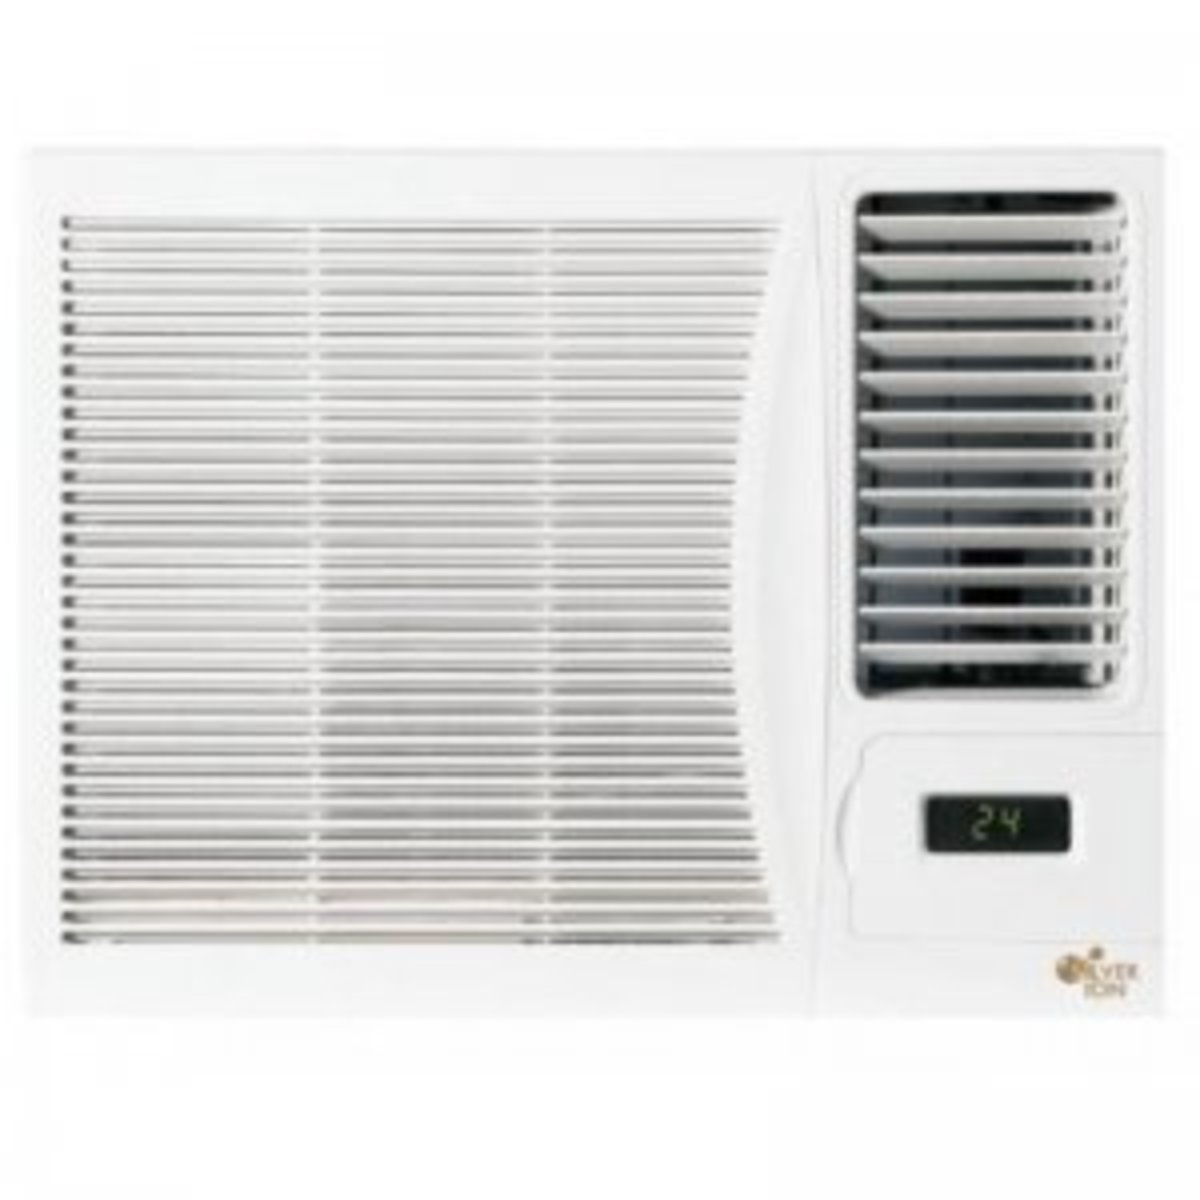 AWA09210R 1.0HP Window Type Air Conditioner with Remote Control Hong Kong Warranty Genuine Products